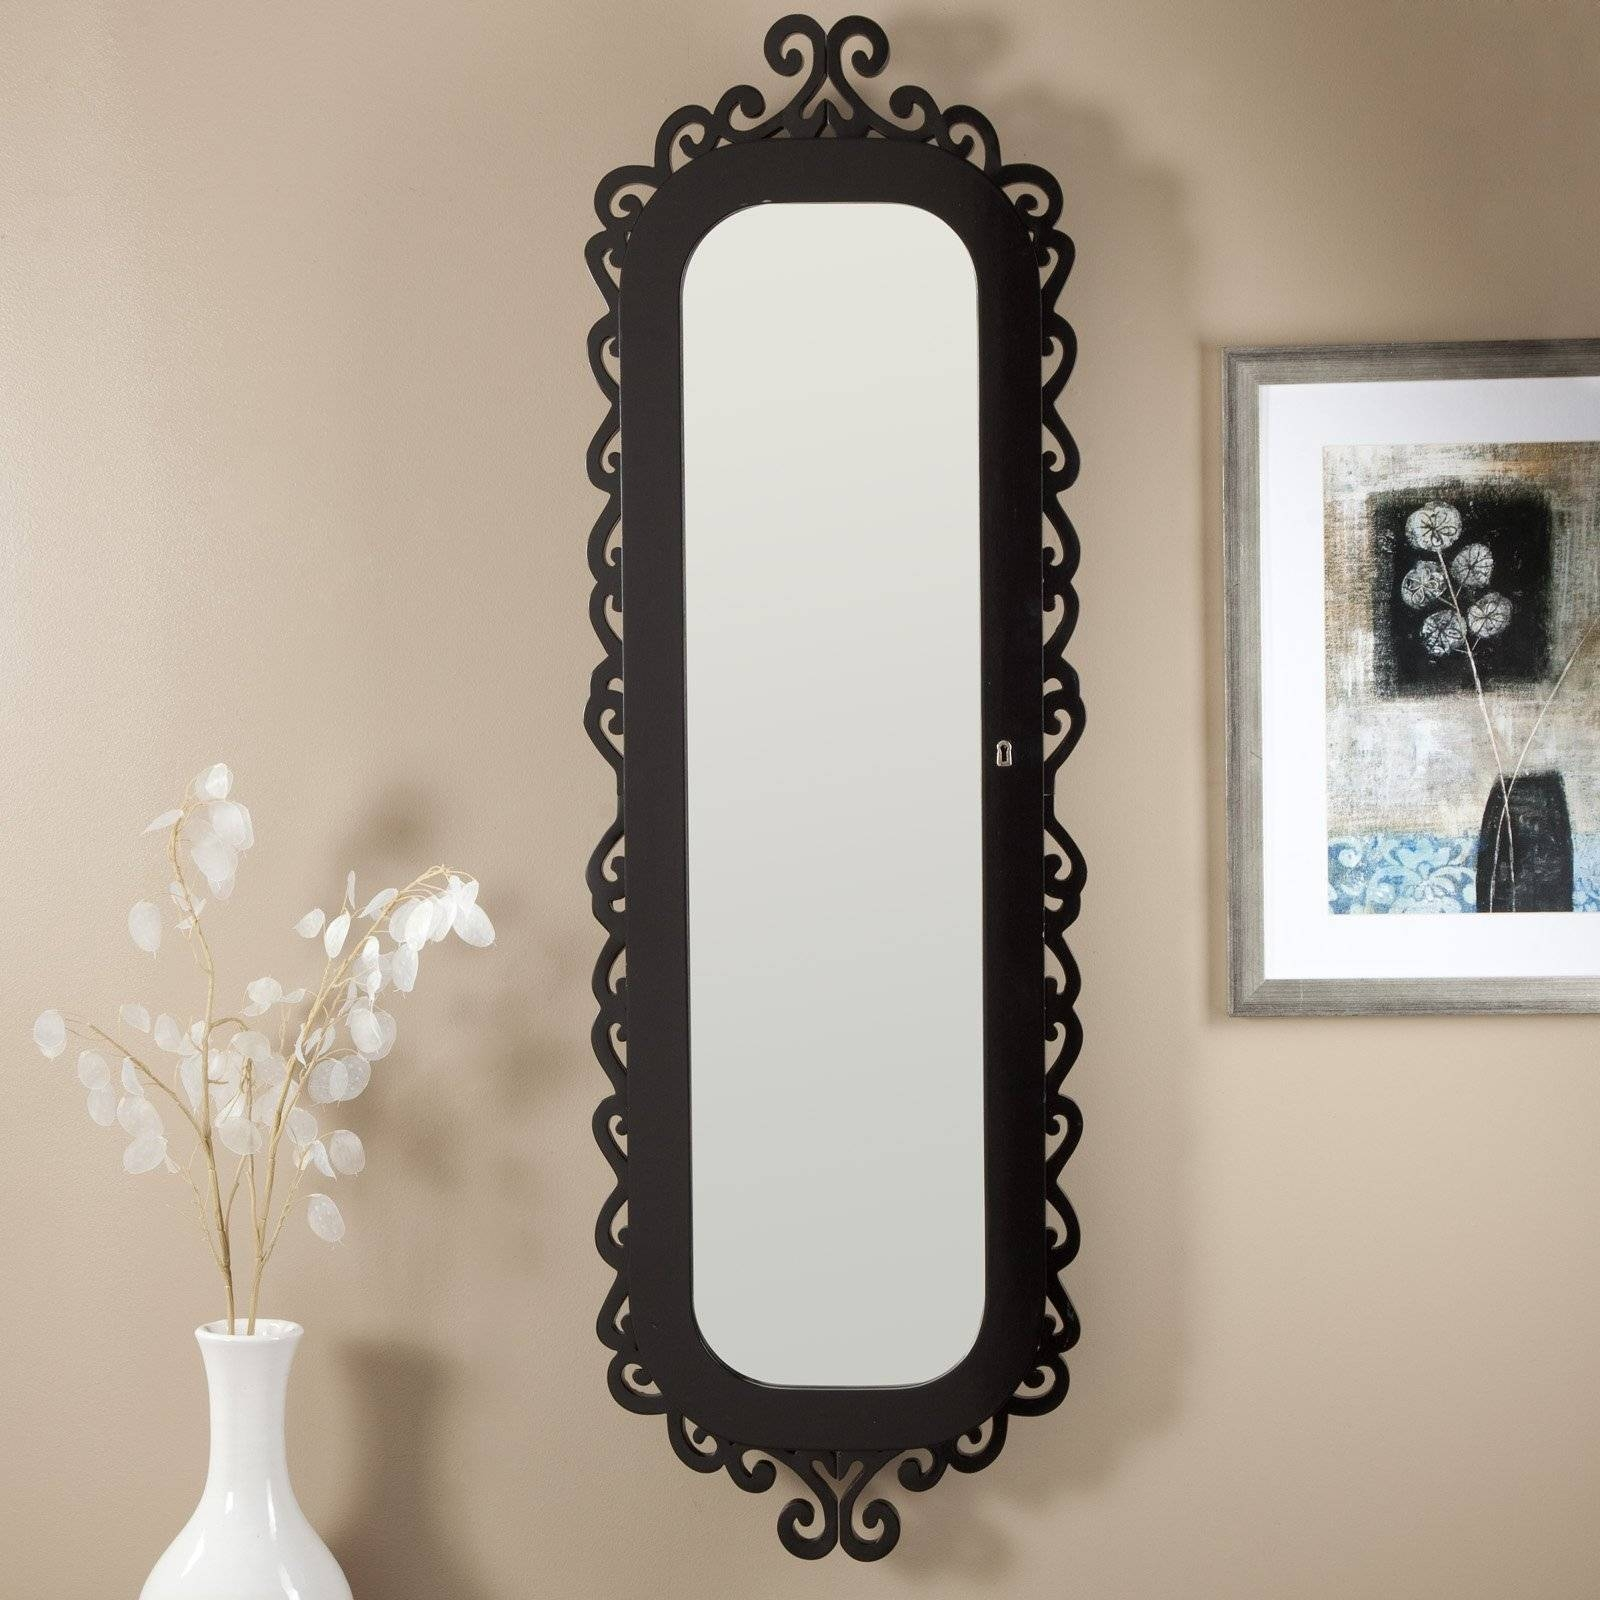 Fascinating Black Polished Iron Wall Mirrors With Vintage Style With Regard To Cheap Vintage Style Mirrors (View 8 of 15)